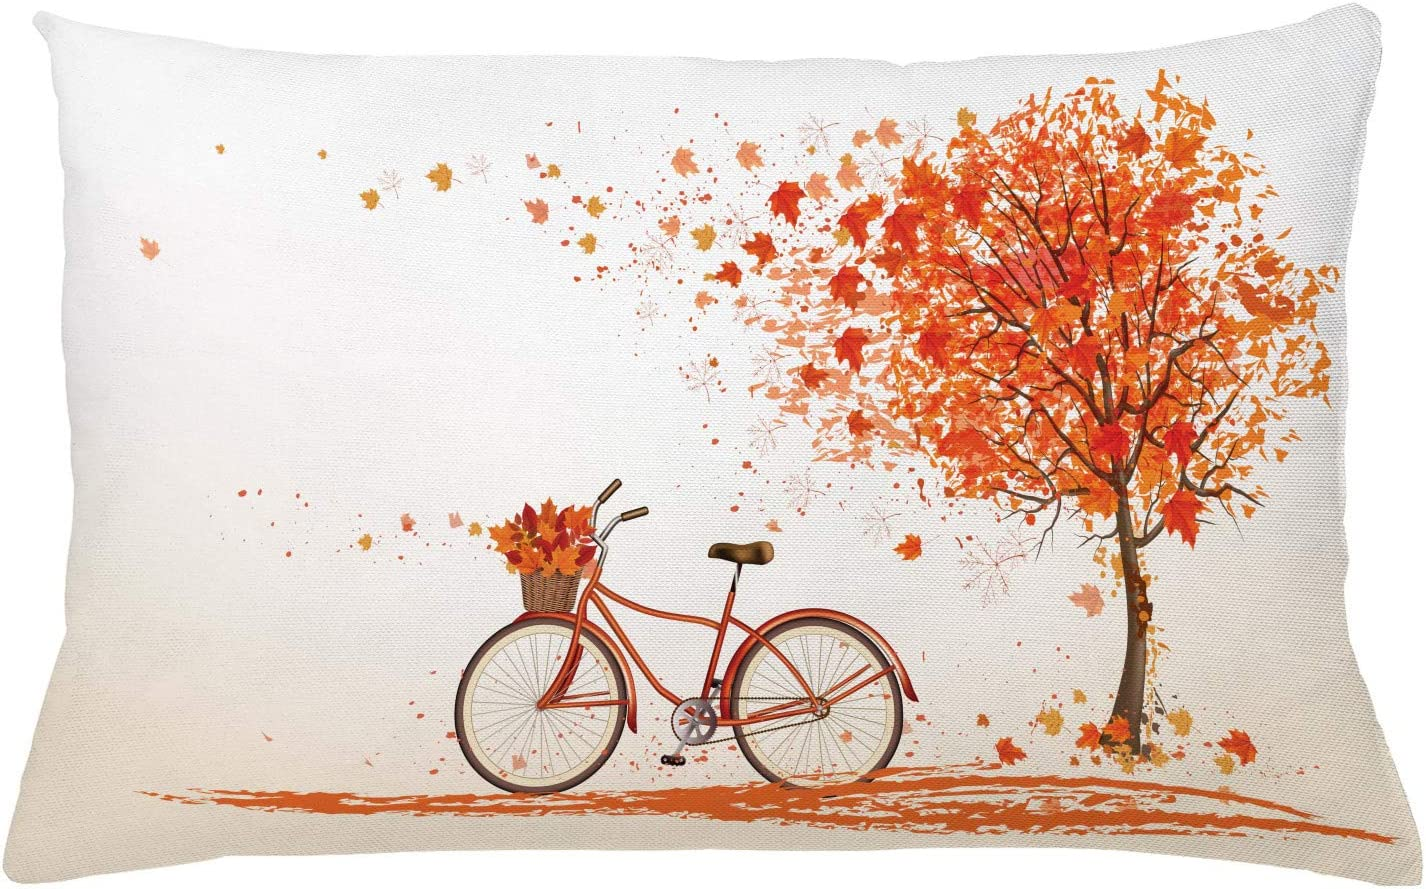 "Ambesonne Bicycle Throw Pillow Cushion Cover, Autumn Tree with Aged Old Bike and Fall Tree November Day Fall Season Park Nature Theme, Decorative Rectangle Accent Pillow Case, 26"" X 16"", Orange"